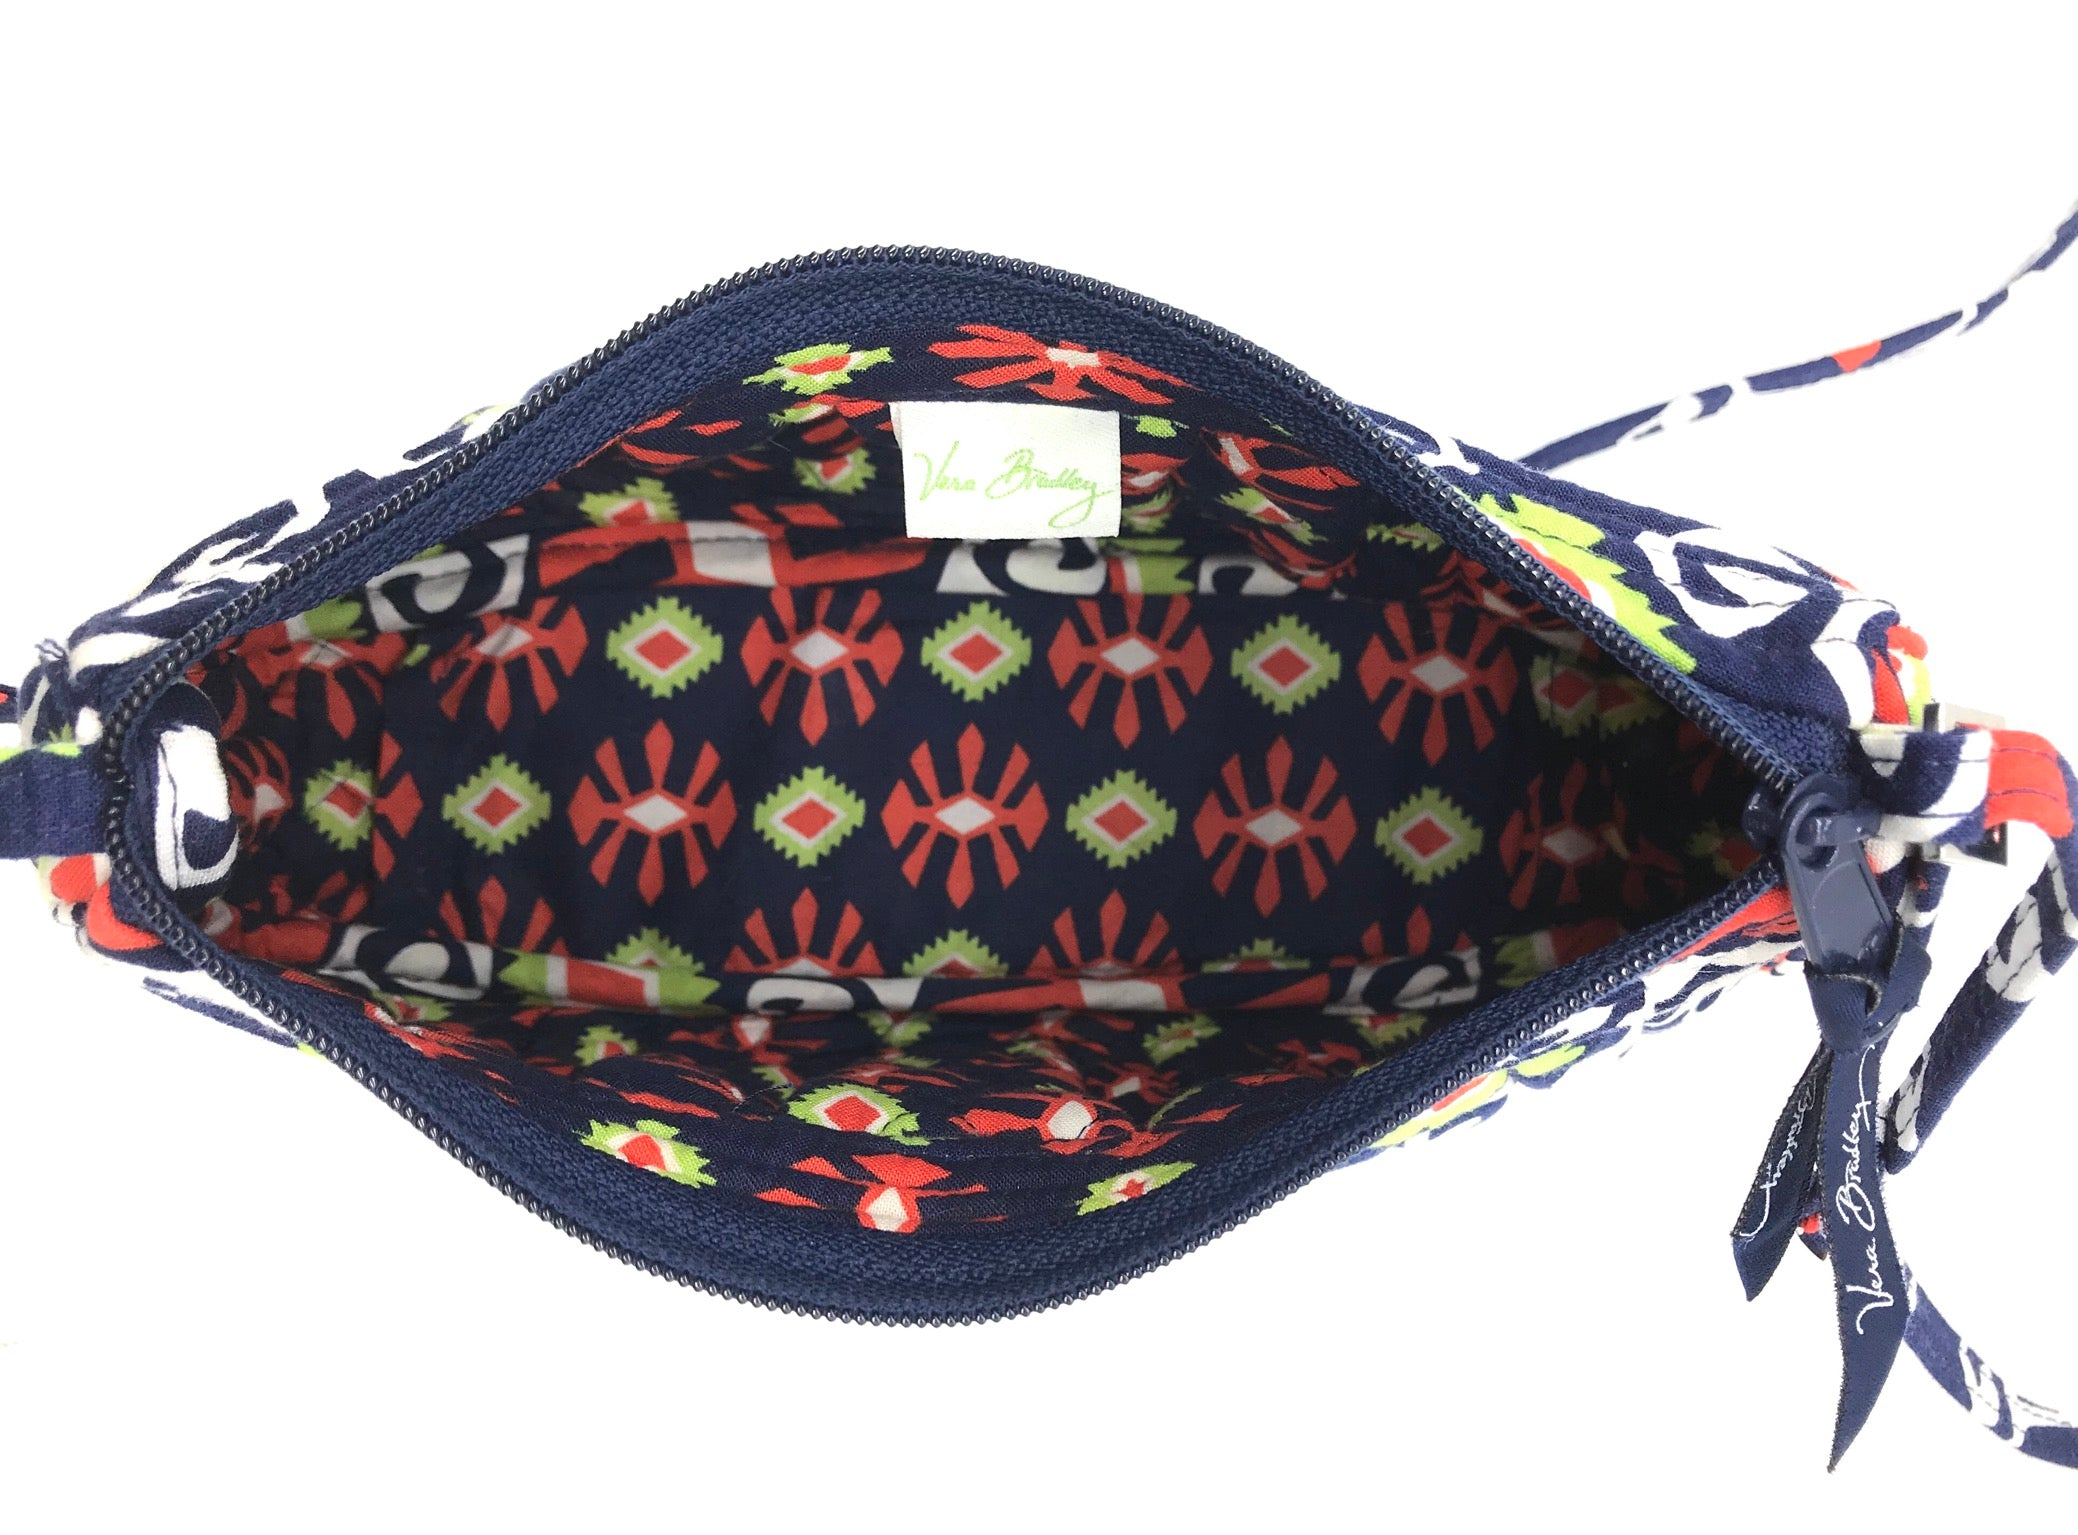 Photo #3 - BRAND: VERA BRADLEY <BR>STYLE: HANDBAG <BR>COLOR: MULTI<BR>SIZE: SMALL <BR>SKU: 262-26211-139522<BR>GENTLE WEAR - AS IS